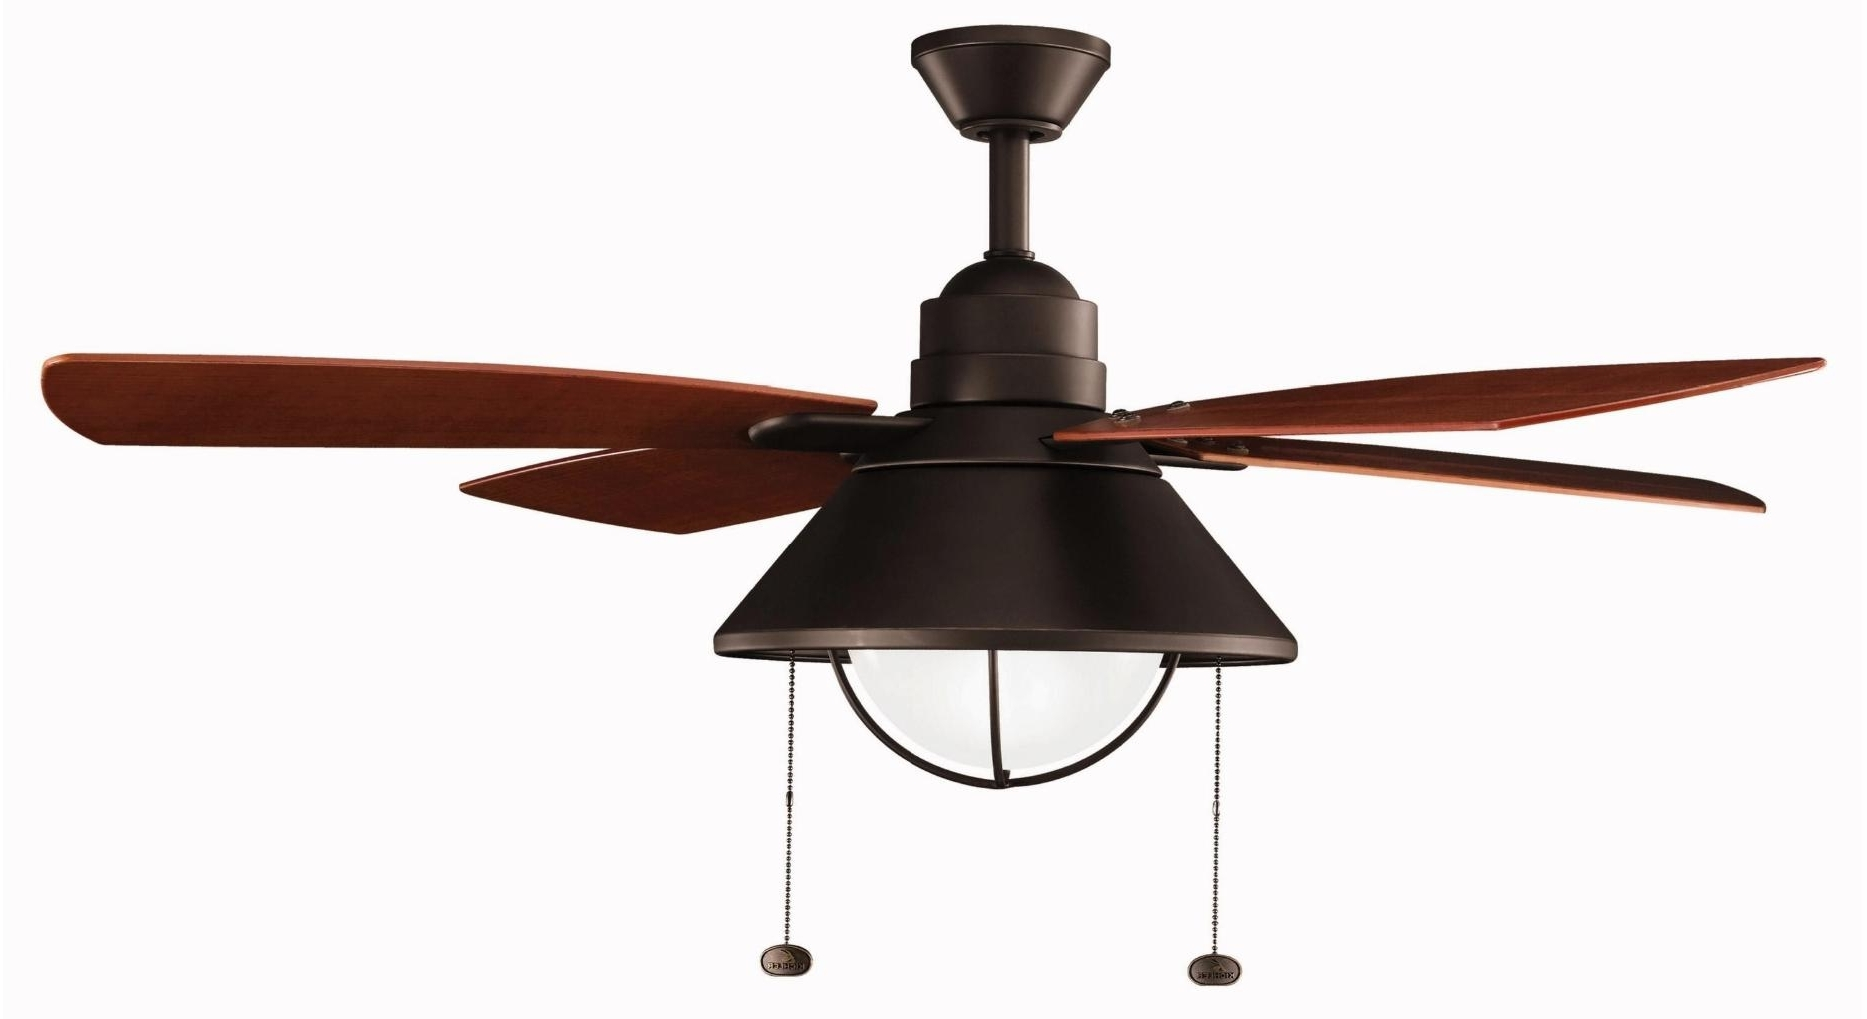 Outdoor Ceiling Fans And Lights Regarding Trendy Ceiling Fans Door Outdoor Ceiling Fans With Light Trend In Tray (View 15 of 20)